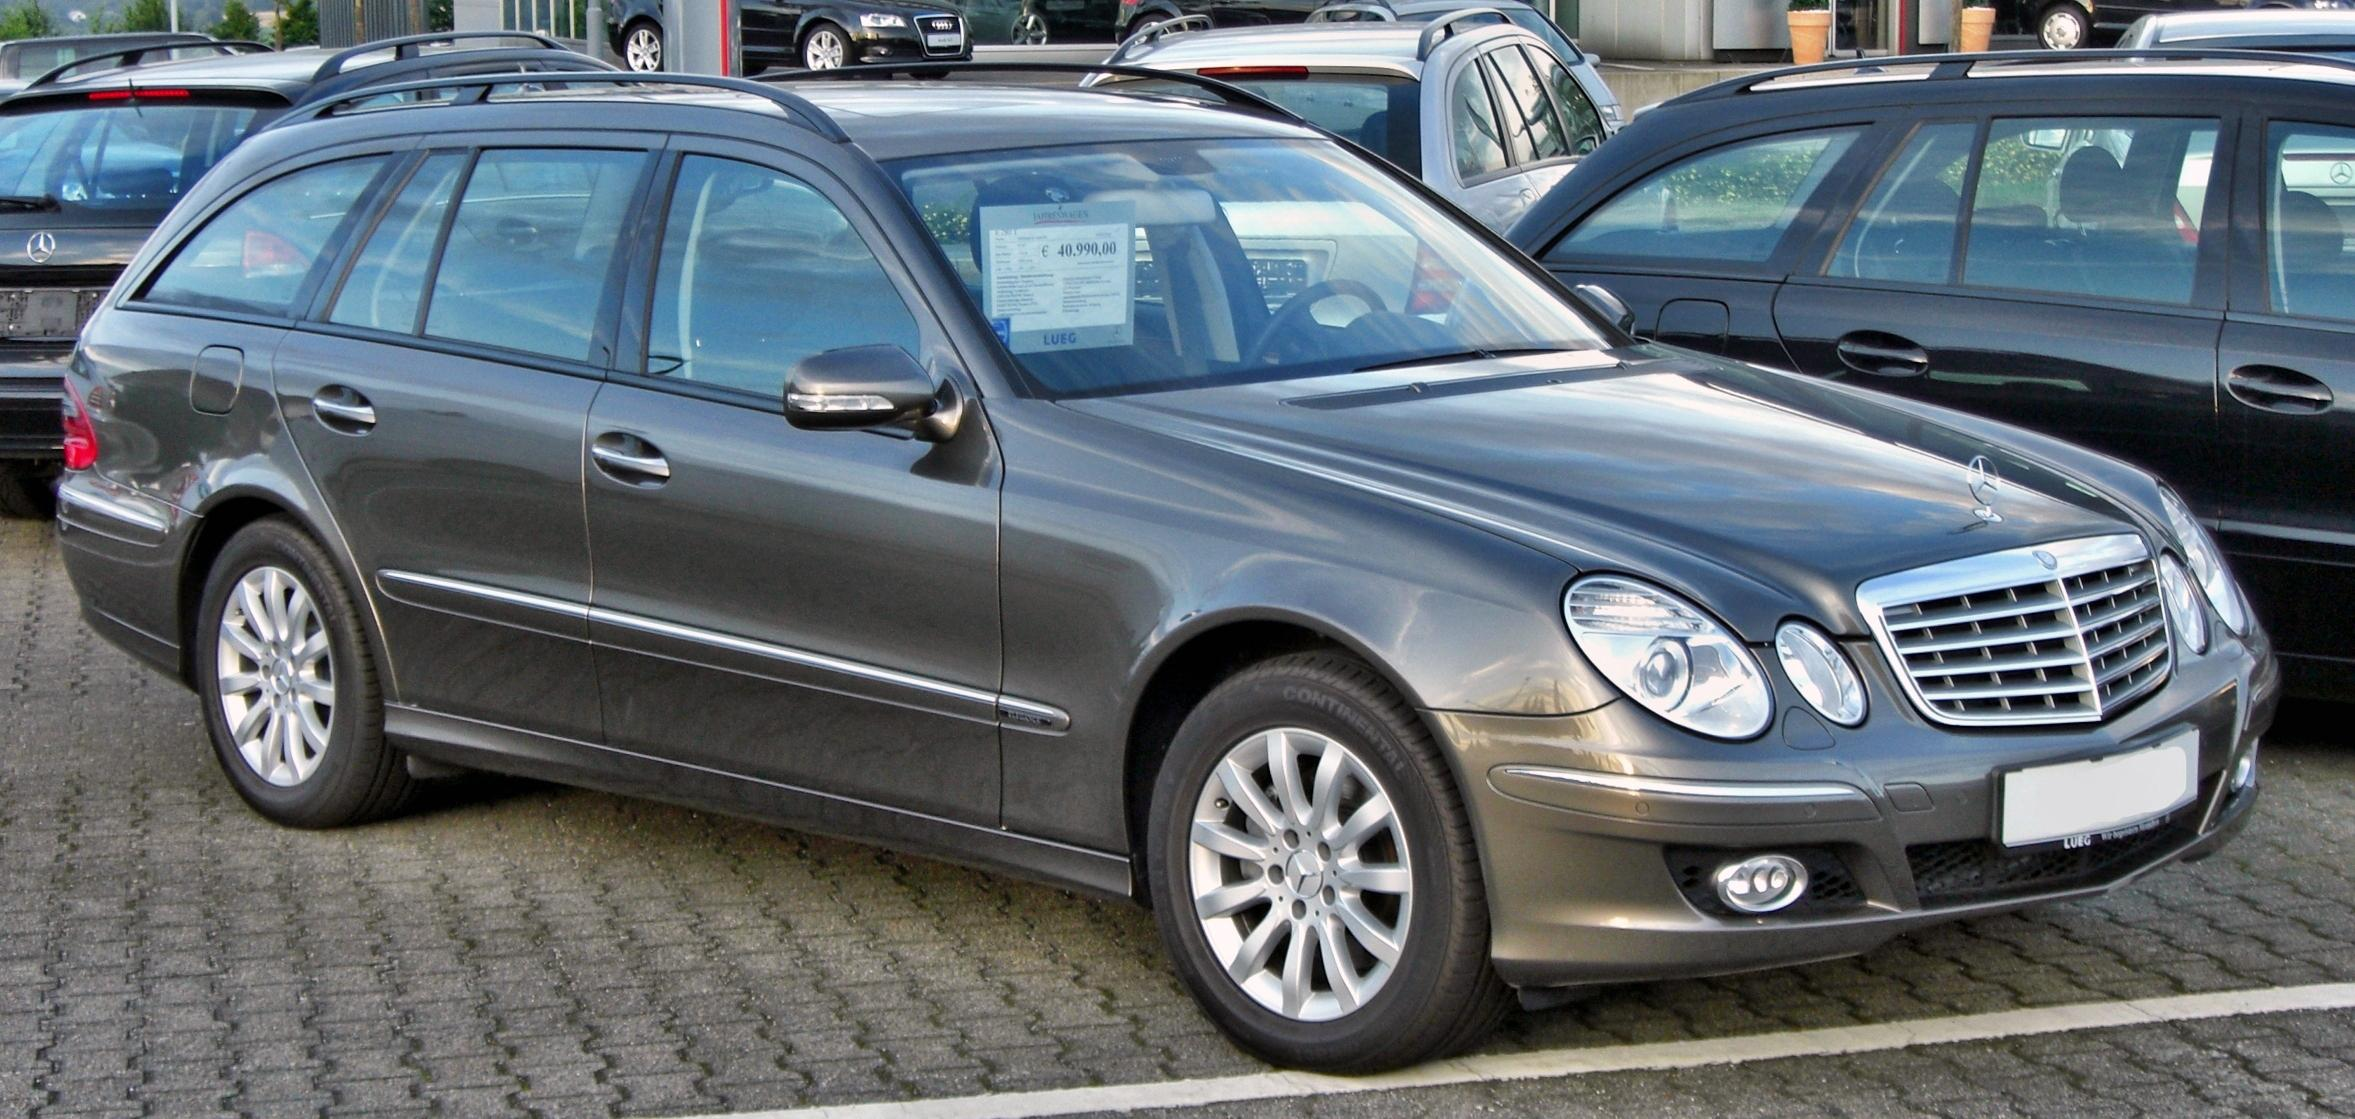 file mercedes e280t s211 facelift wikimedia commons. Black Bedroom Furniture Sets. Home Design Ideas